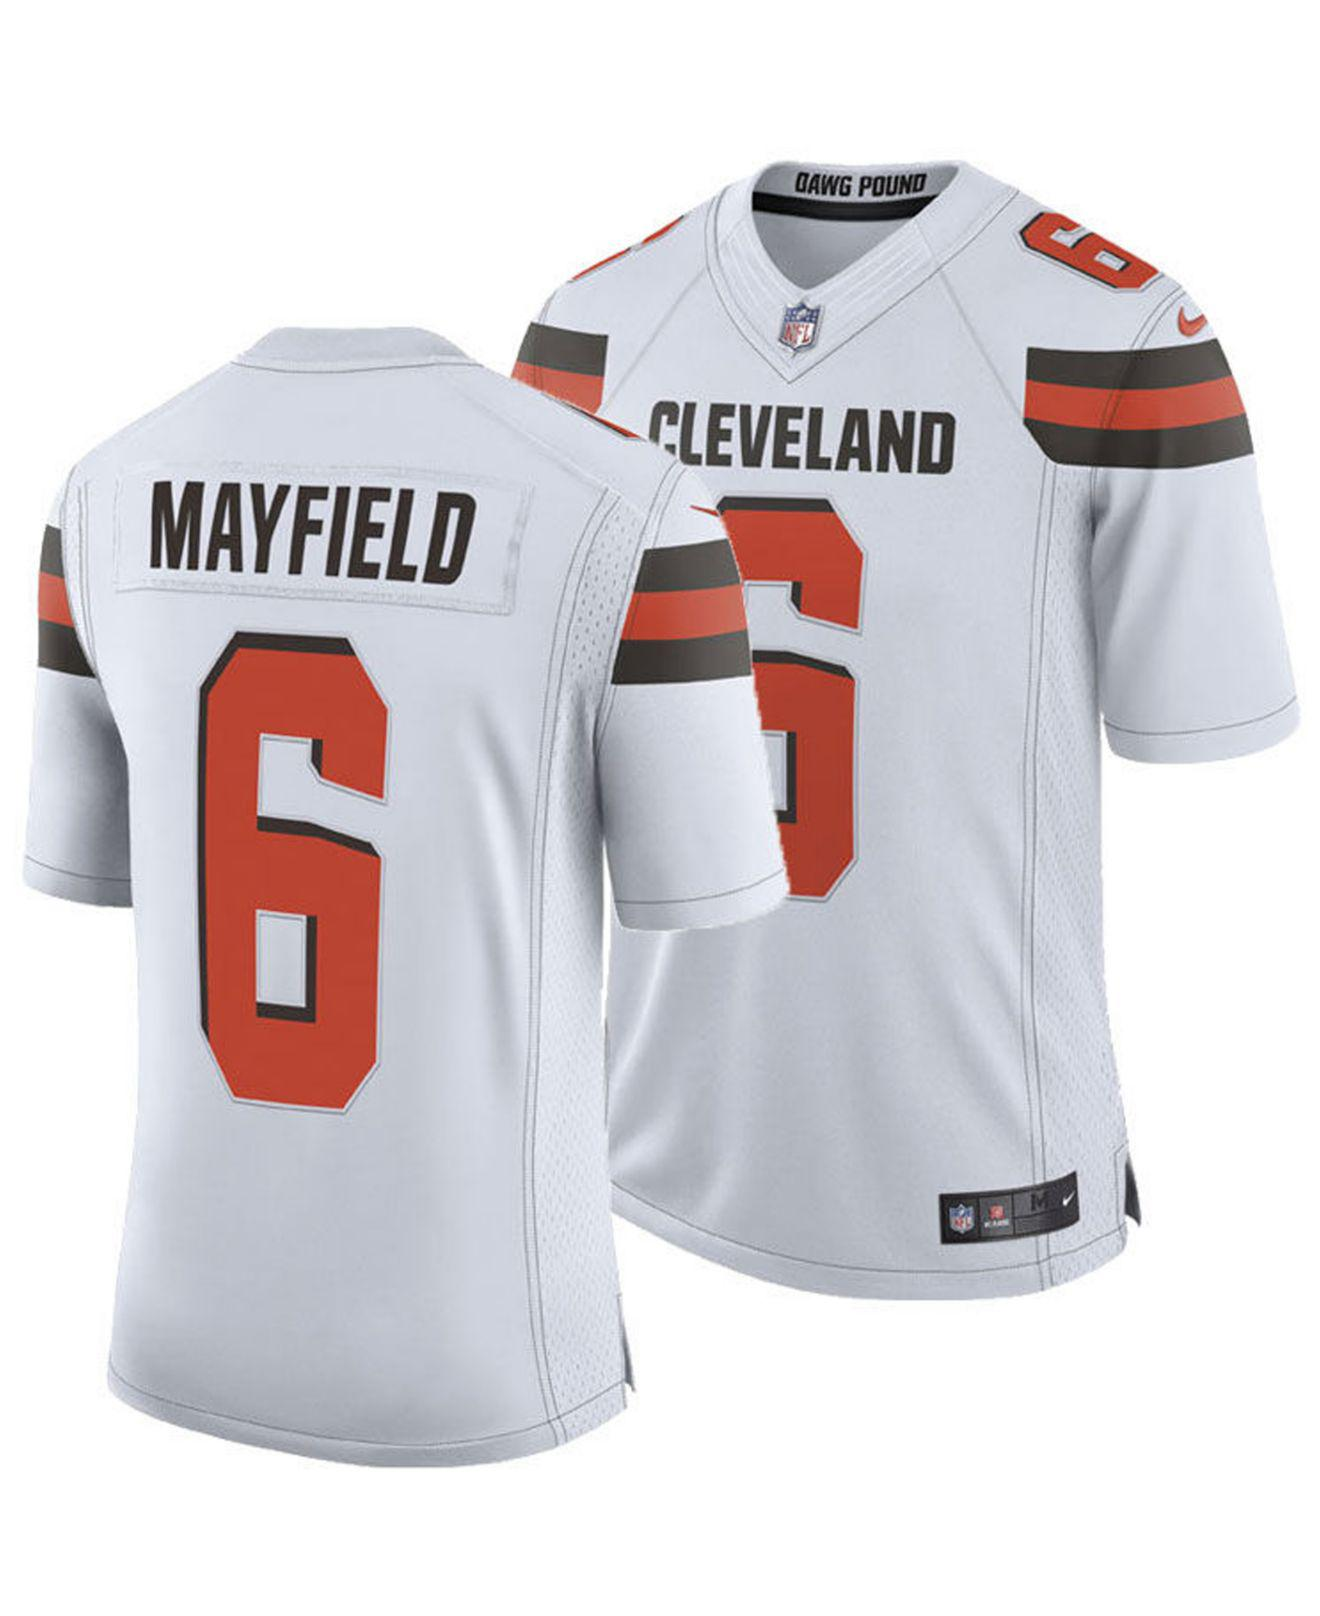 brand new 441fc a274c Nike Baker Mayfield Cleveland Browns Limited Jersey in White ...